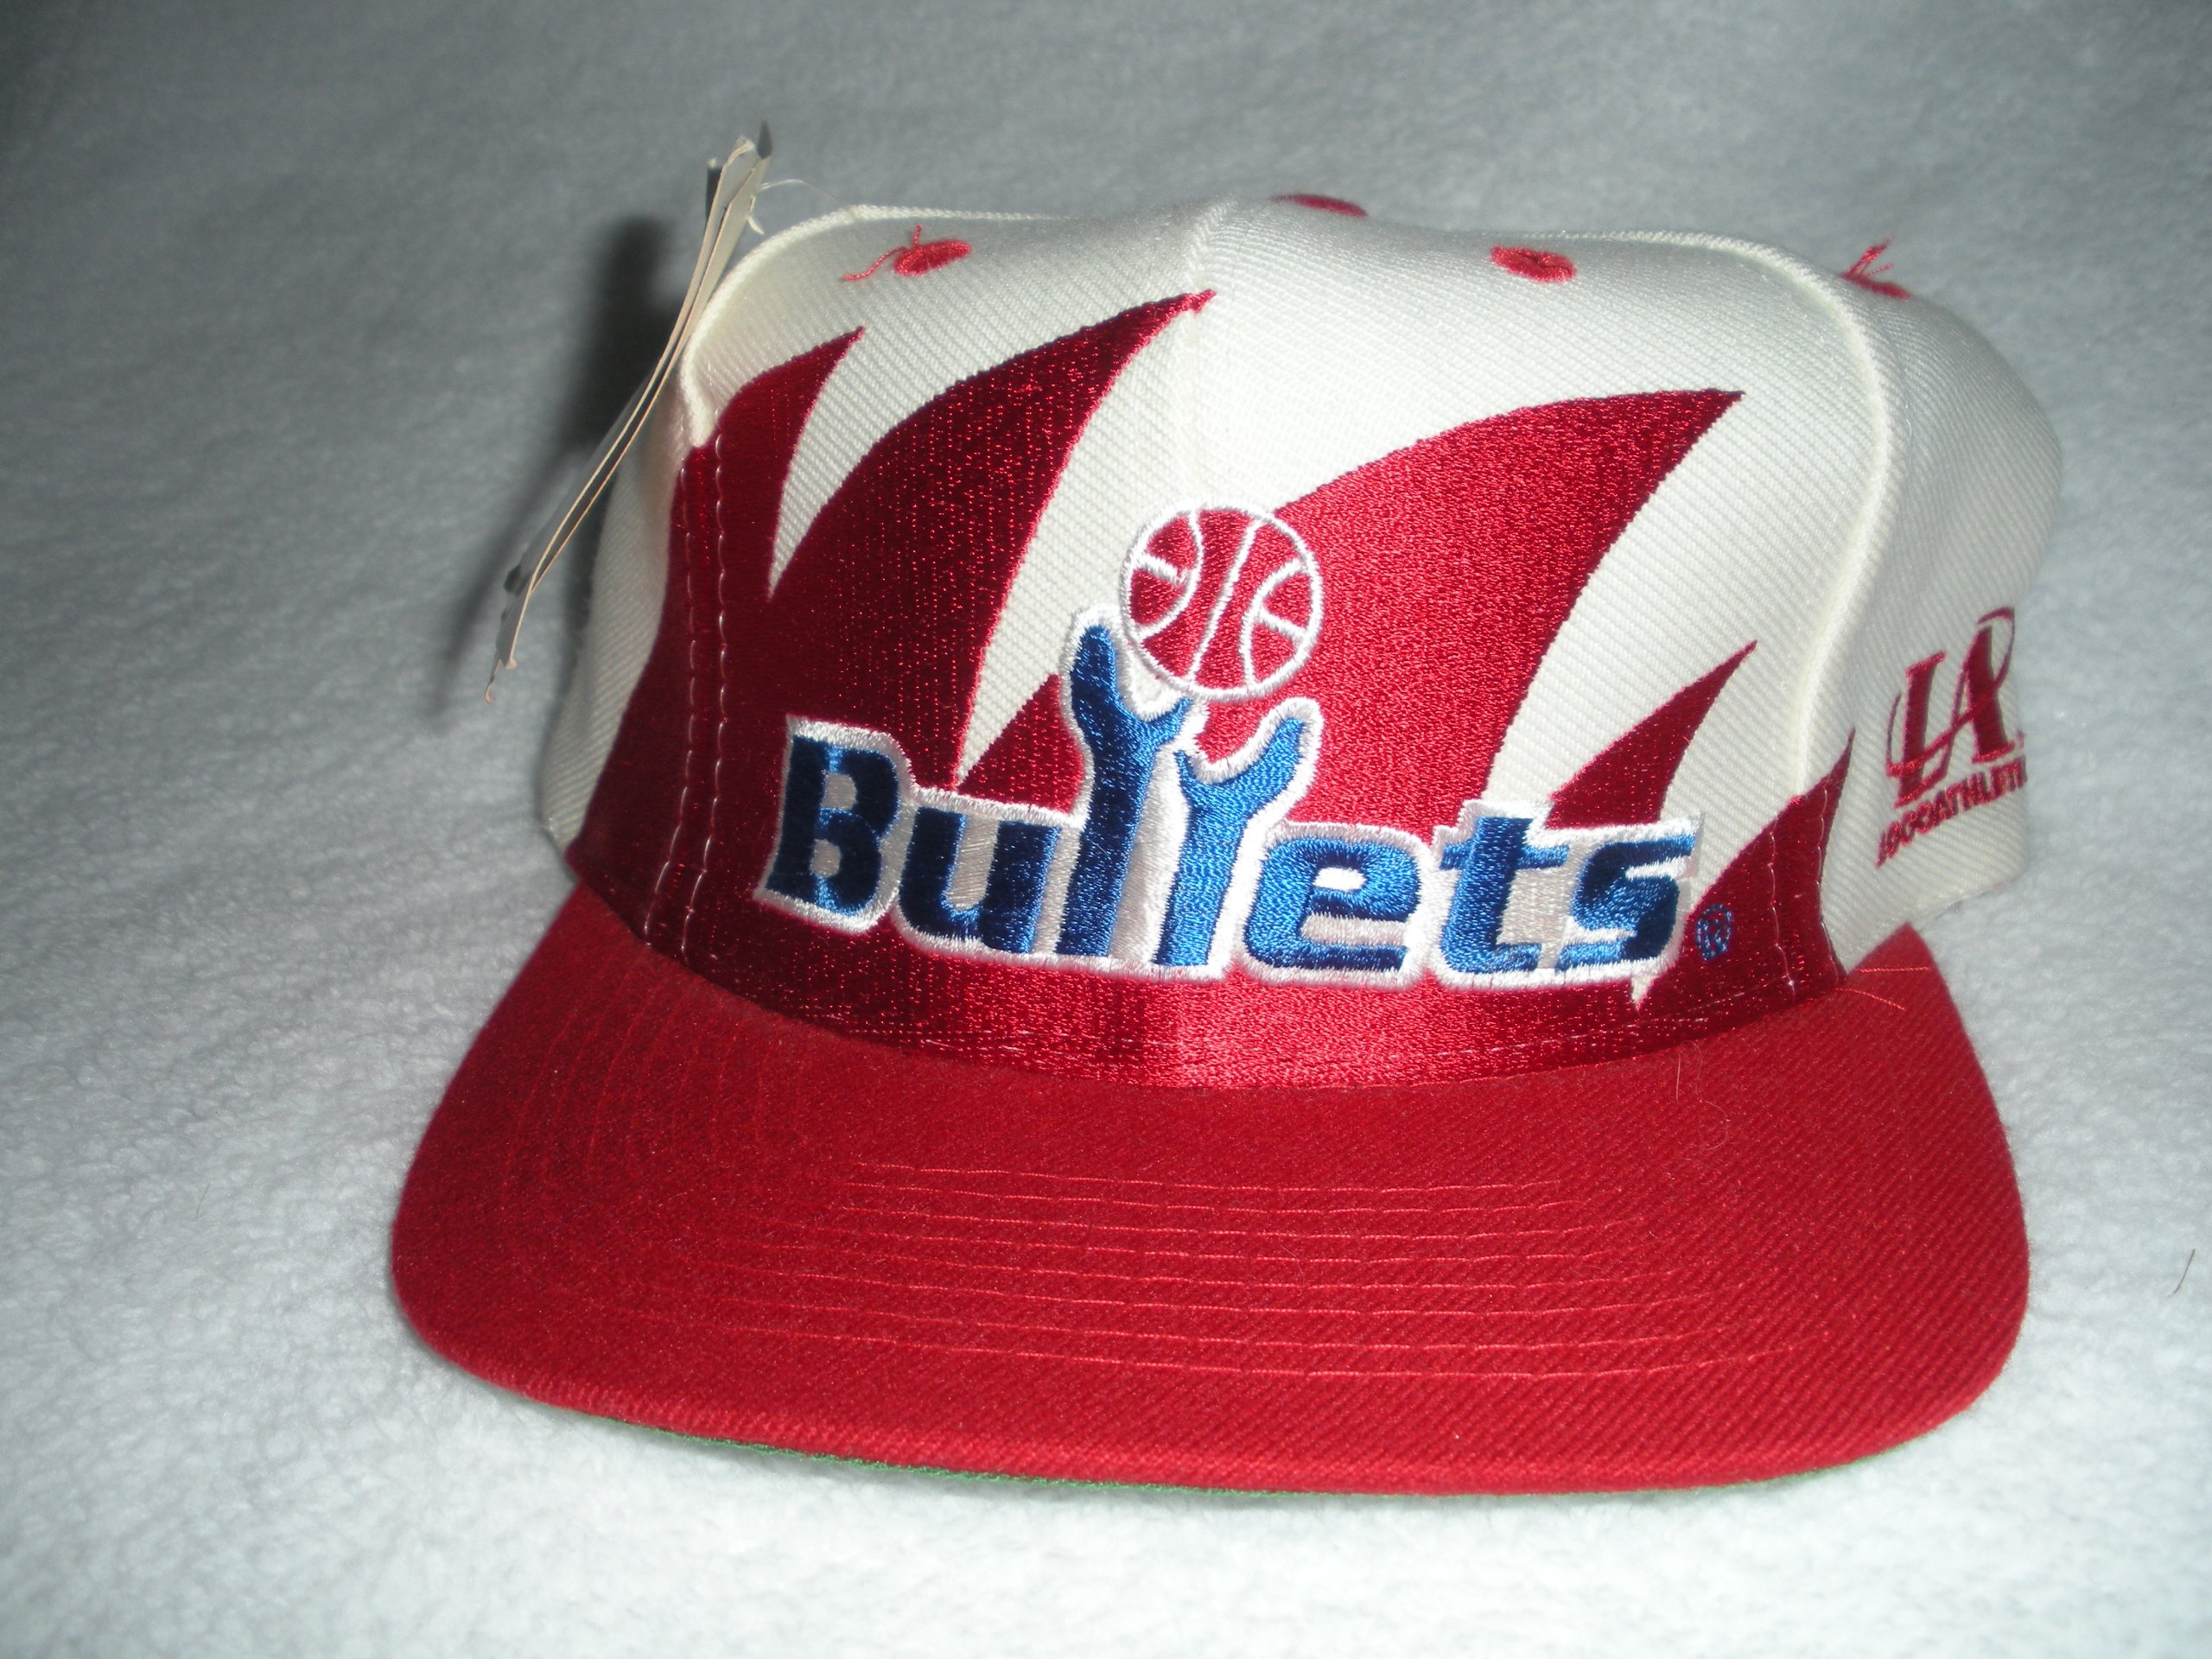 Washington Bullets Vintage Sharktooth Snapback Hat by Logo Athletic